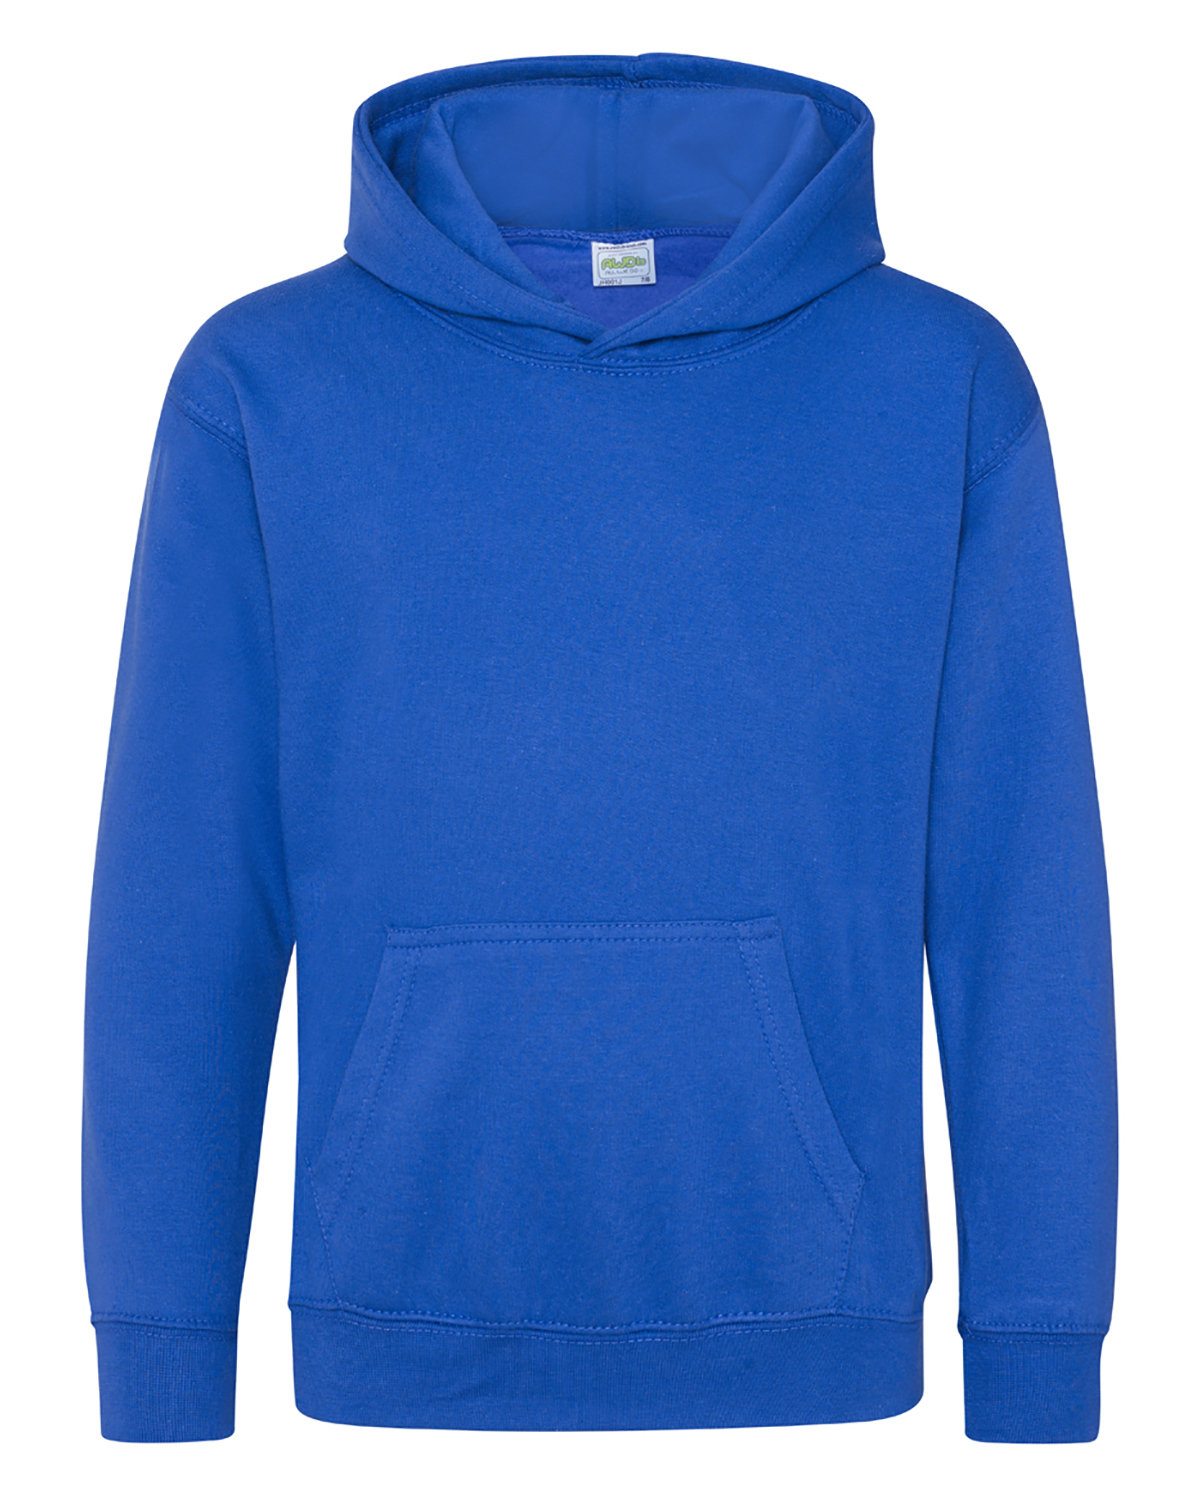 Just Hoods By AWDis Youth 80/20 Midweight College Hooded Sweatshirt ROYAL BLUE